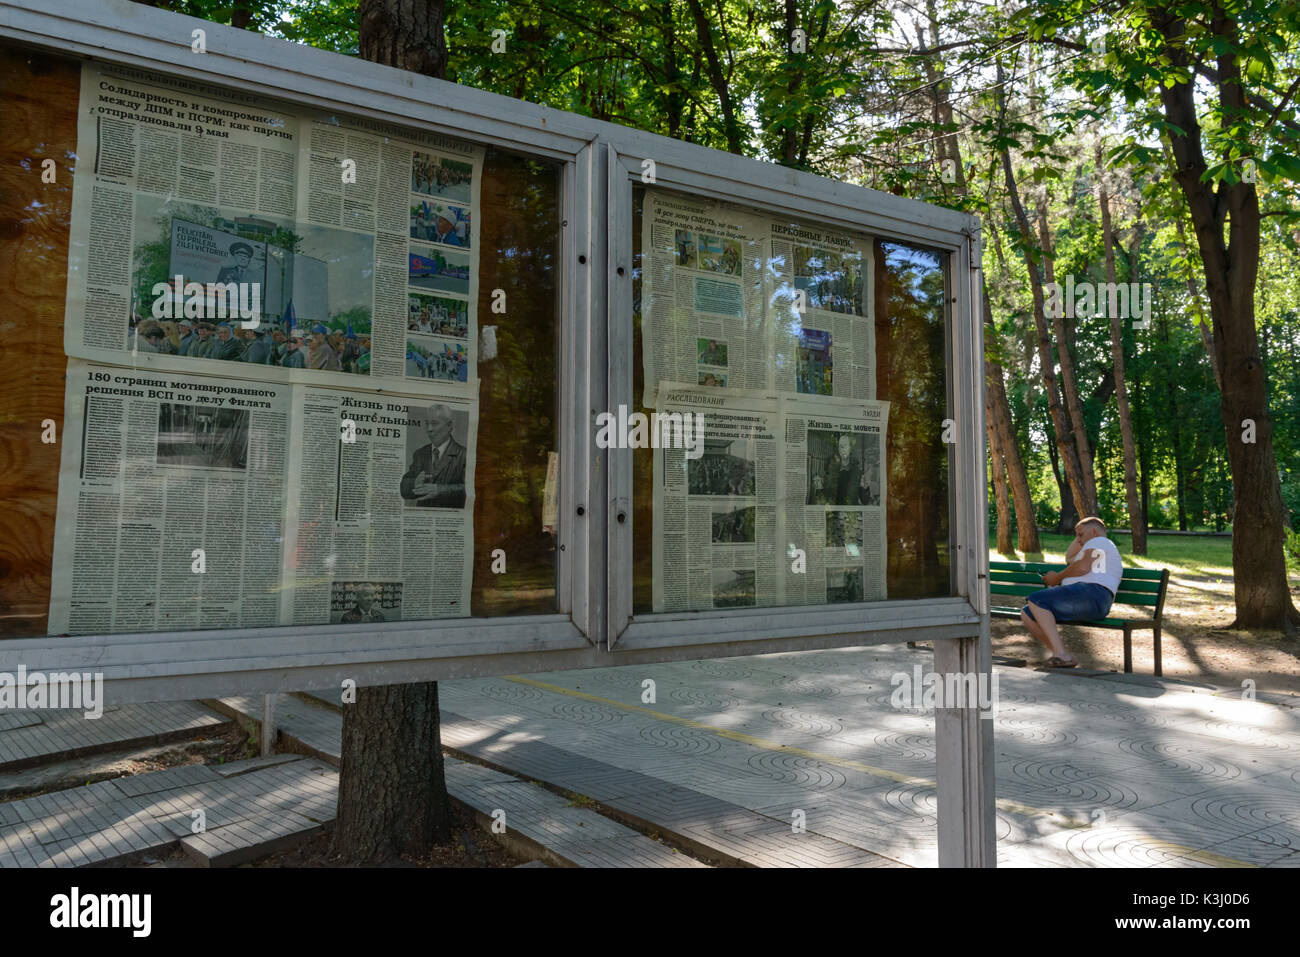 Display of last edition of the national newspaper of Moldova in central Chisinau - Stock Image